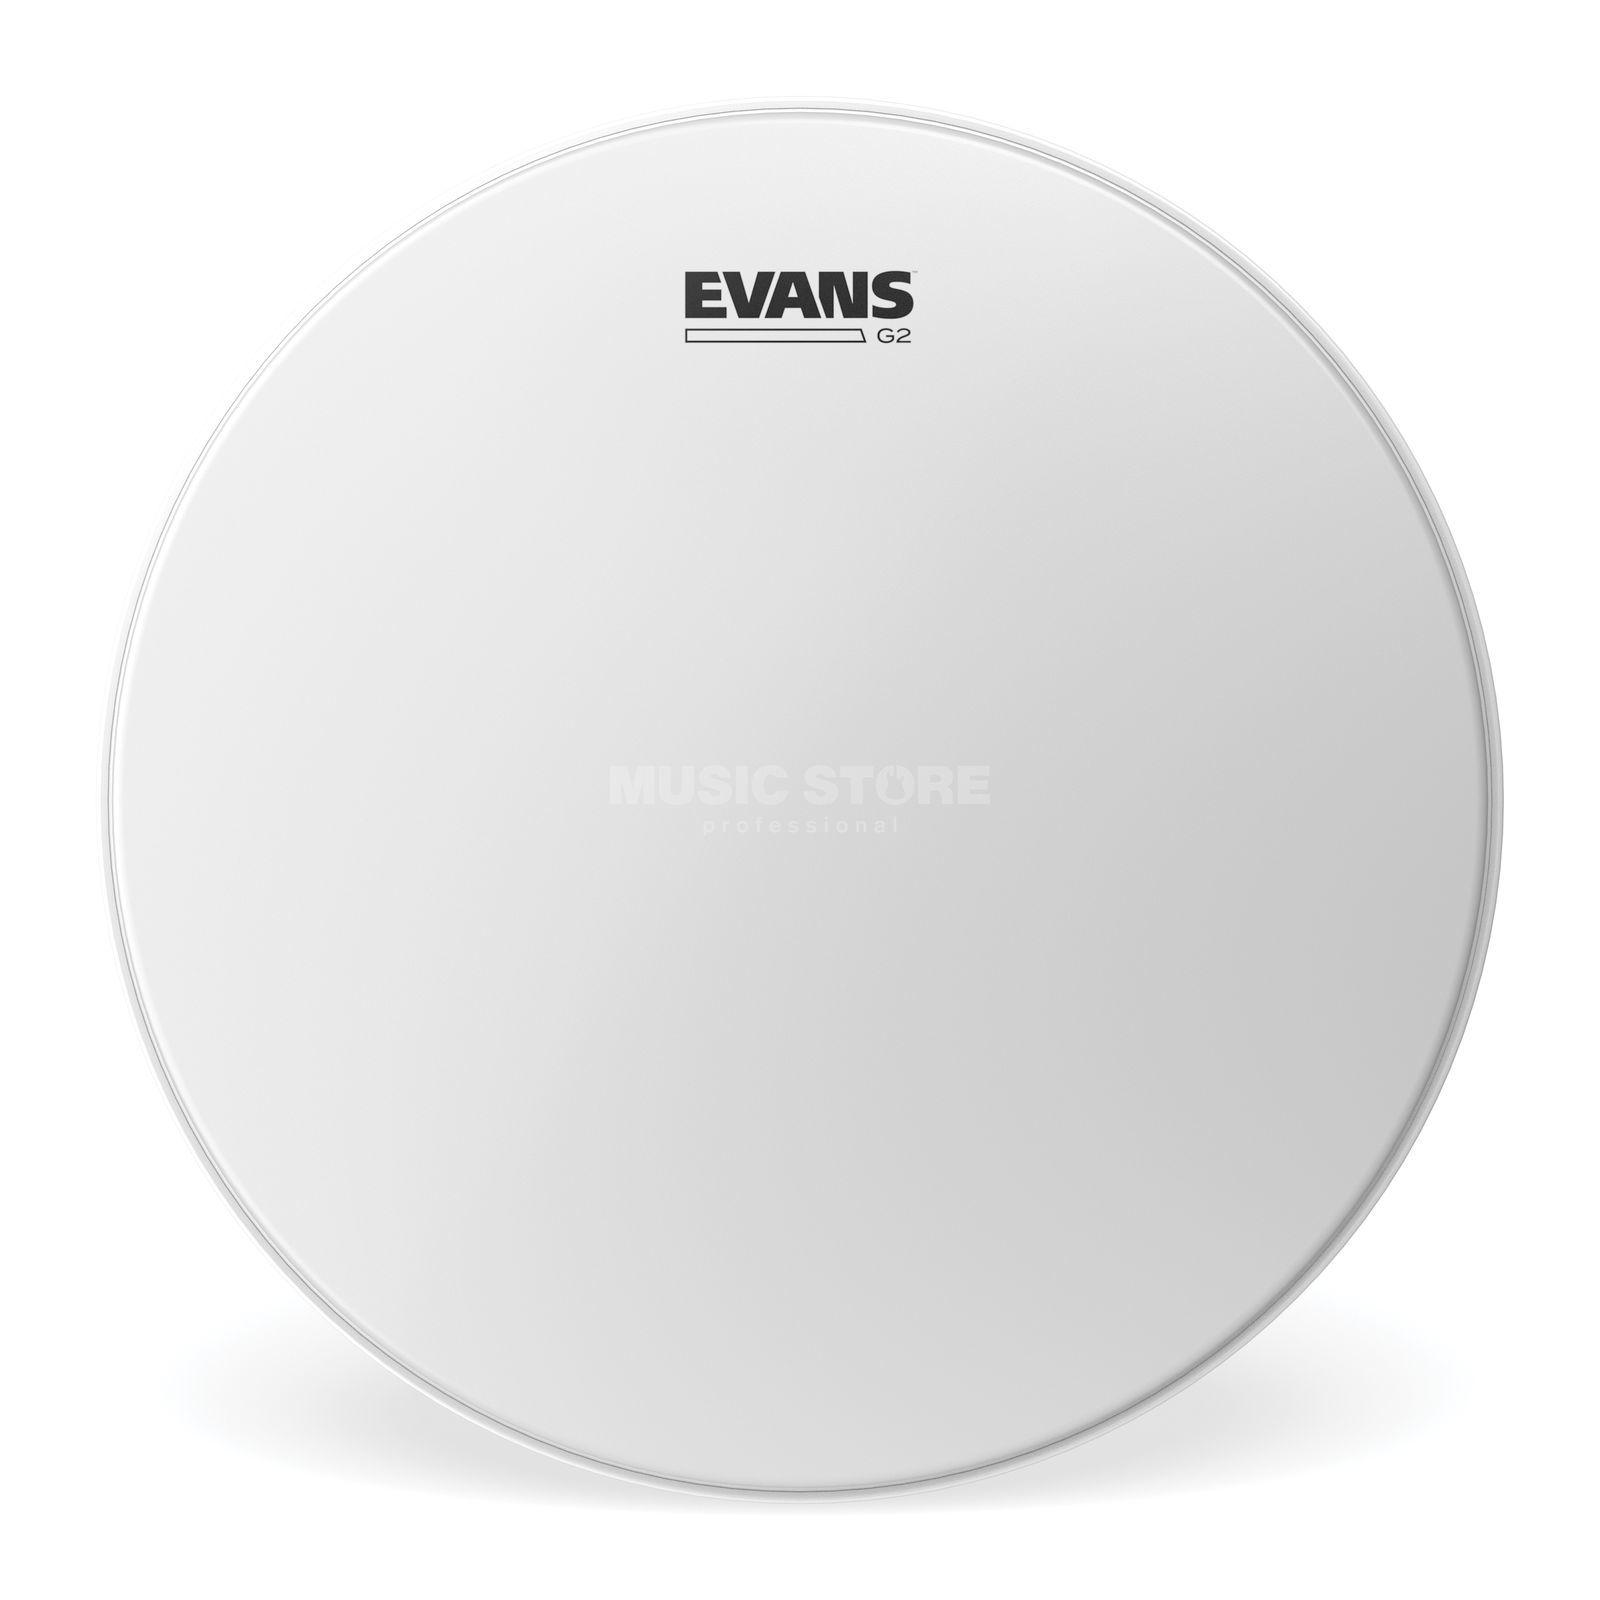 "Evans G2 Coated 10"", B10G2, Tom Batter Изображение товара"